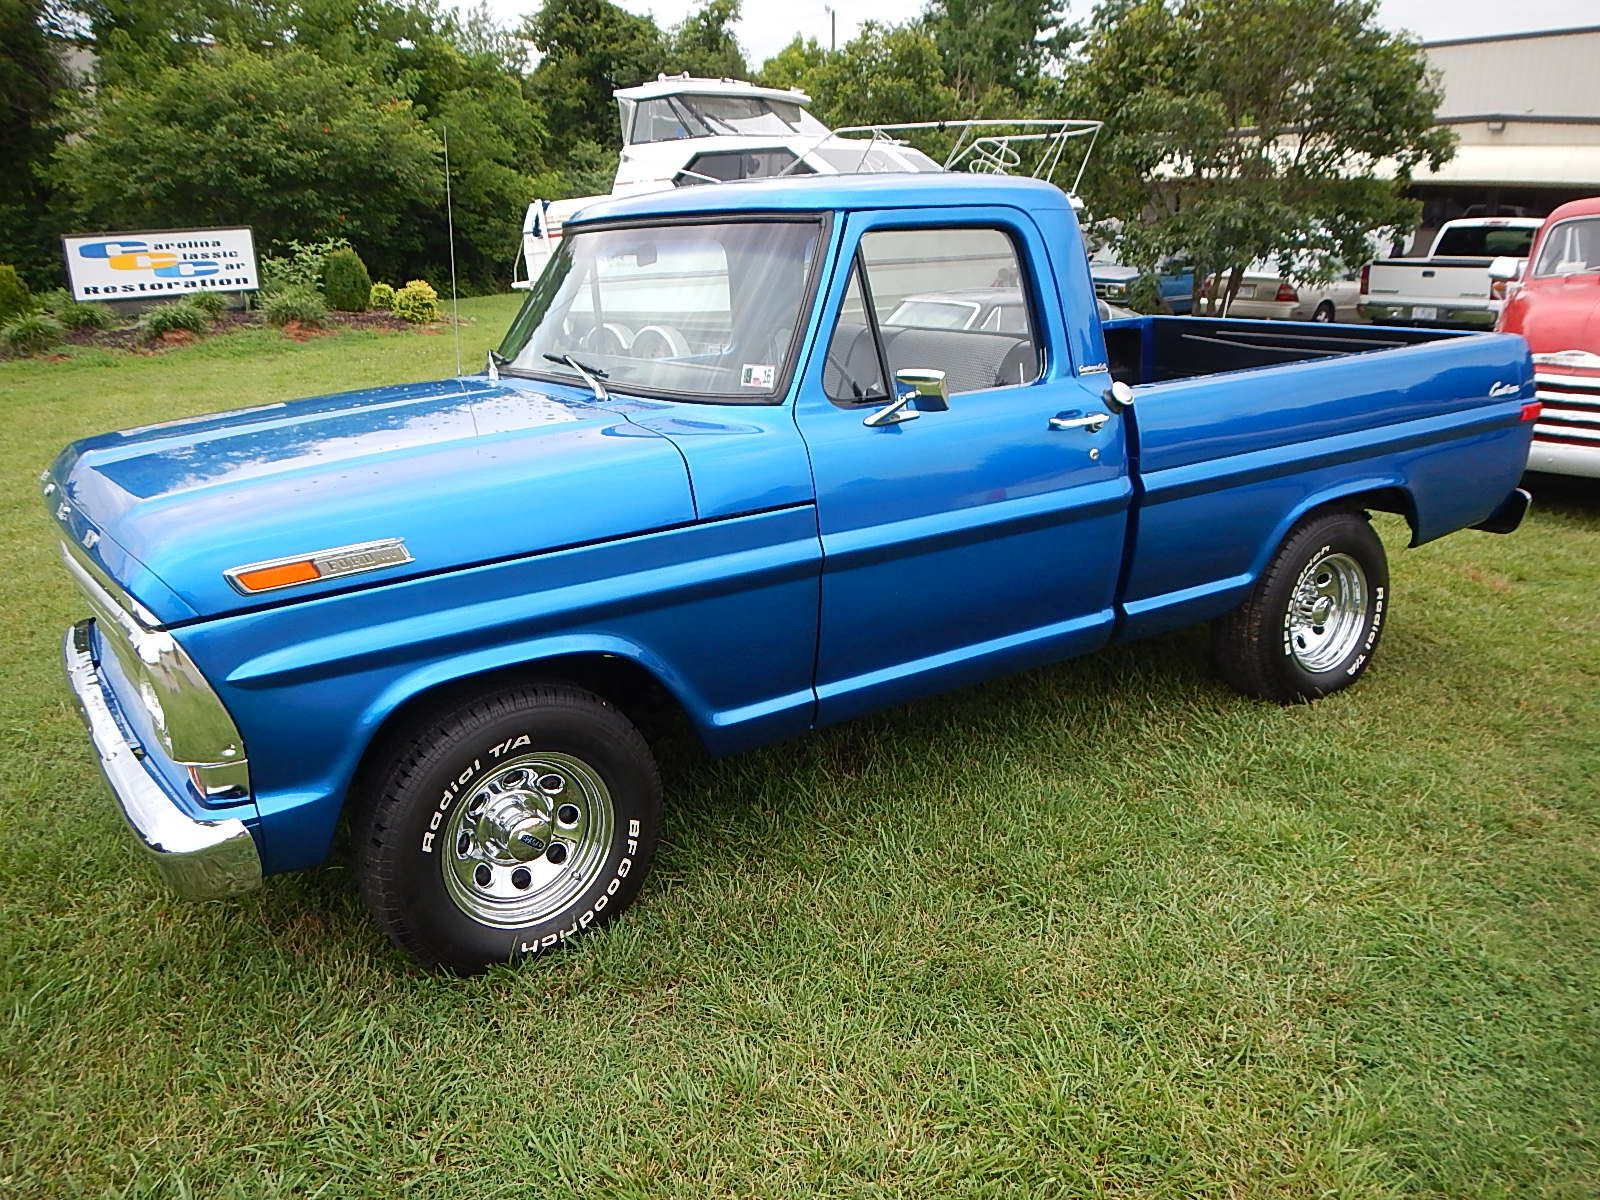 1968 Ford F-100 Front End Swap - Mercury Crown Vic  001.jpg